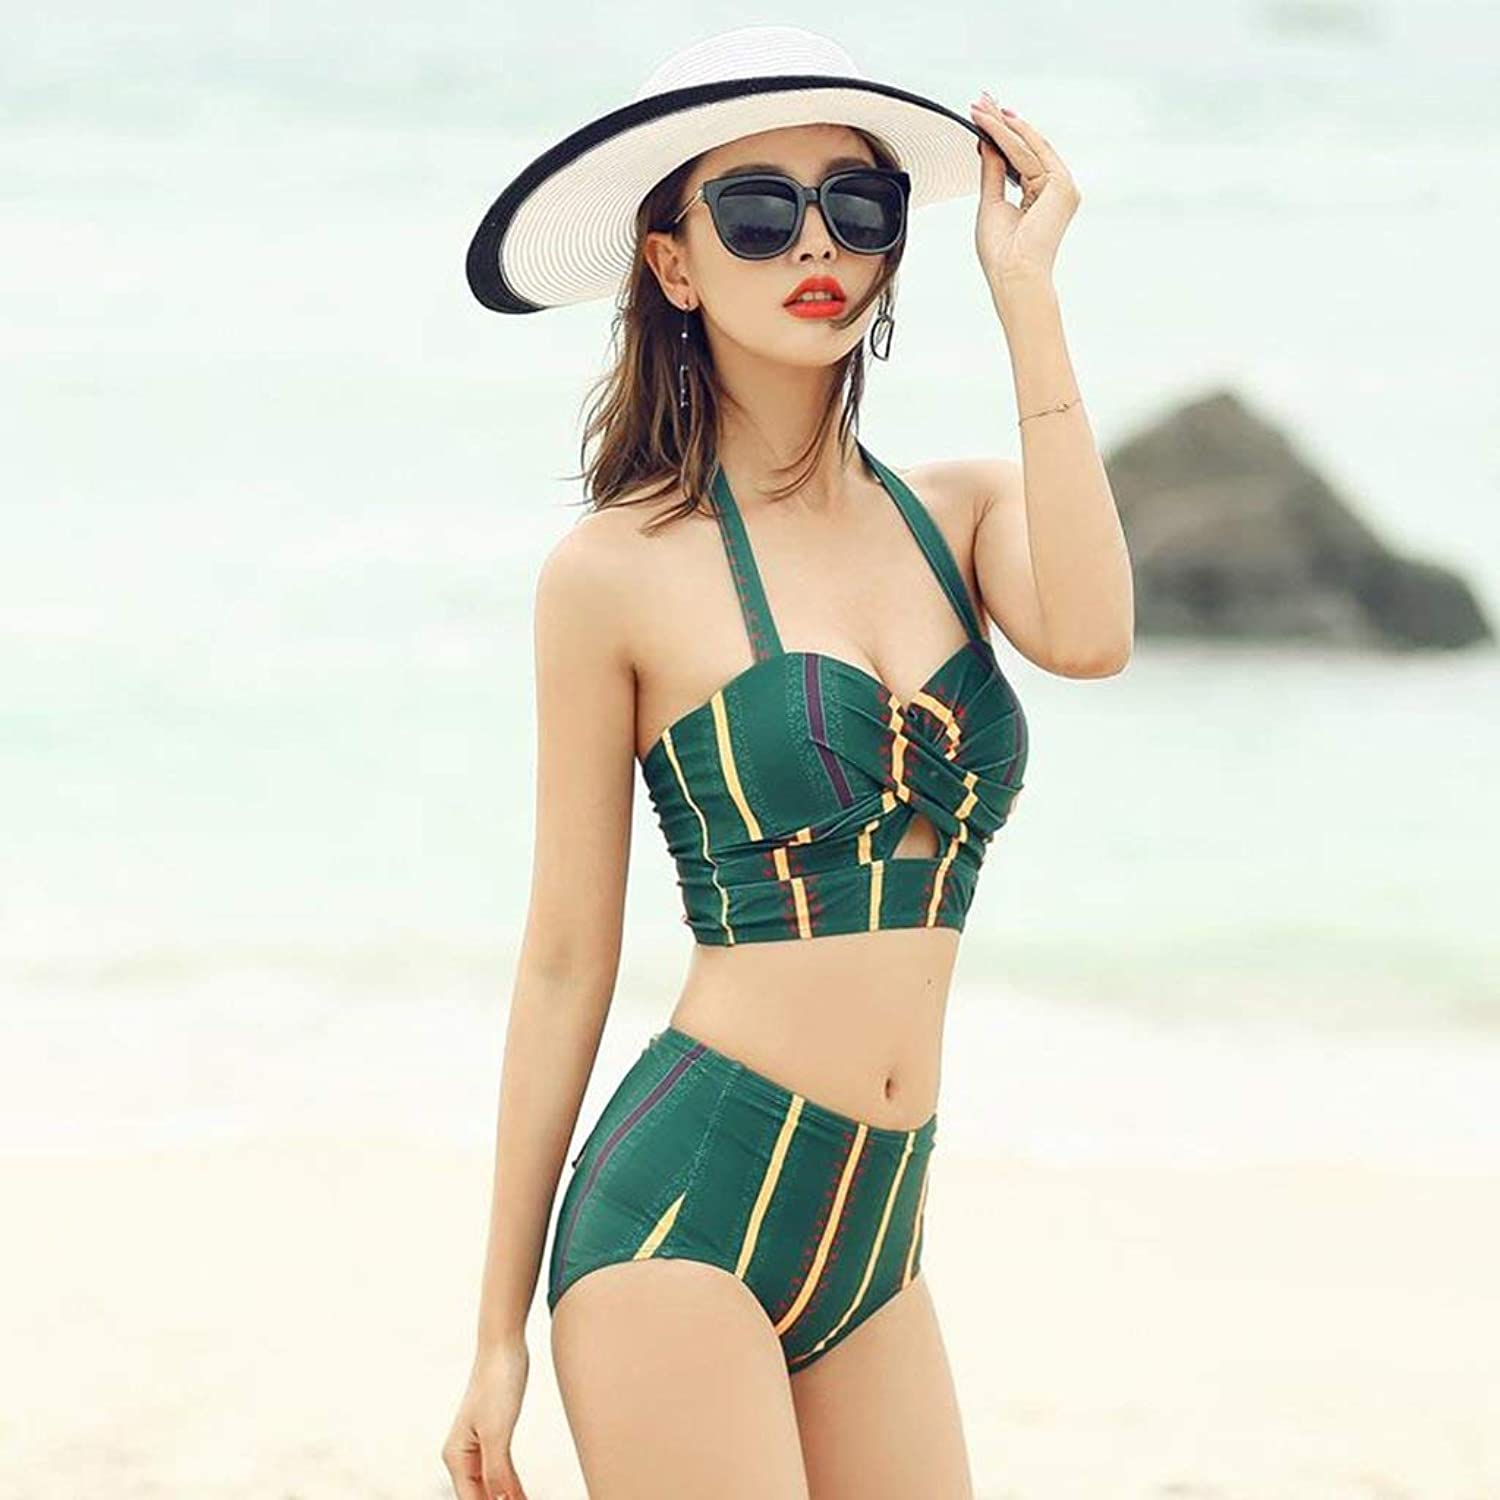 NANIH home Swimwear Women's Swimwear Two-piece Cover belly Sexy BikiniGreen Women Girls Competitive Swimwear (Size   L(50-55 kg))